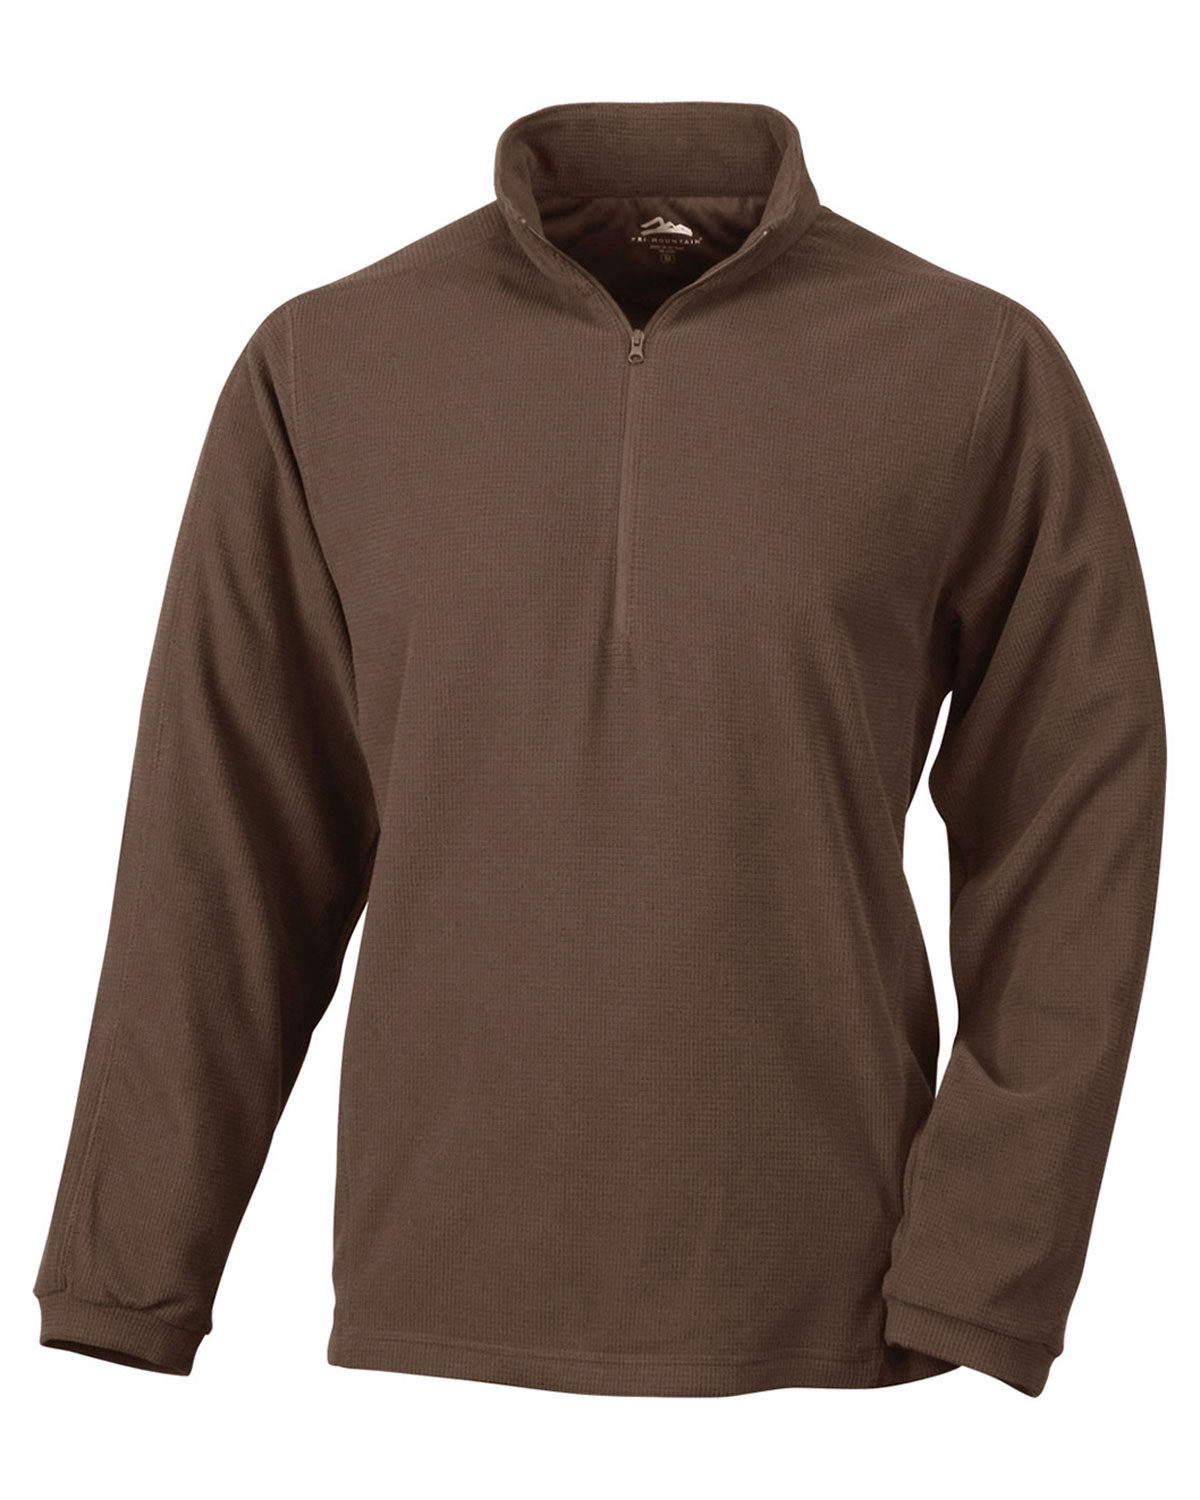 Polyester anti pilling fleece order long sleeve polyester for Polyester lined flannel shirts